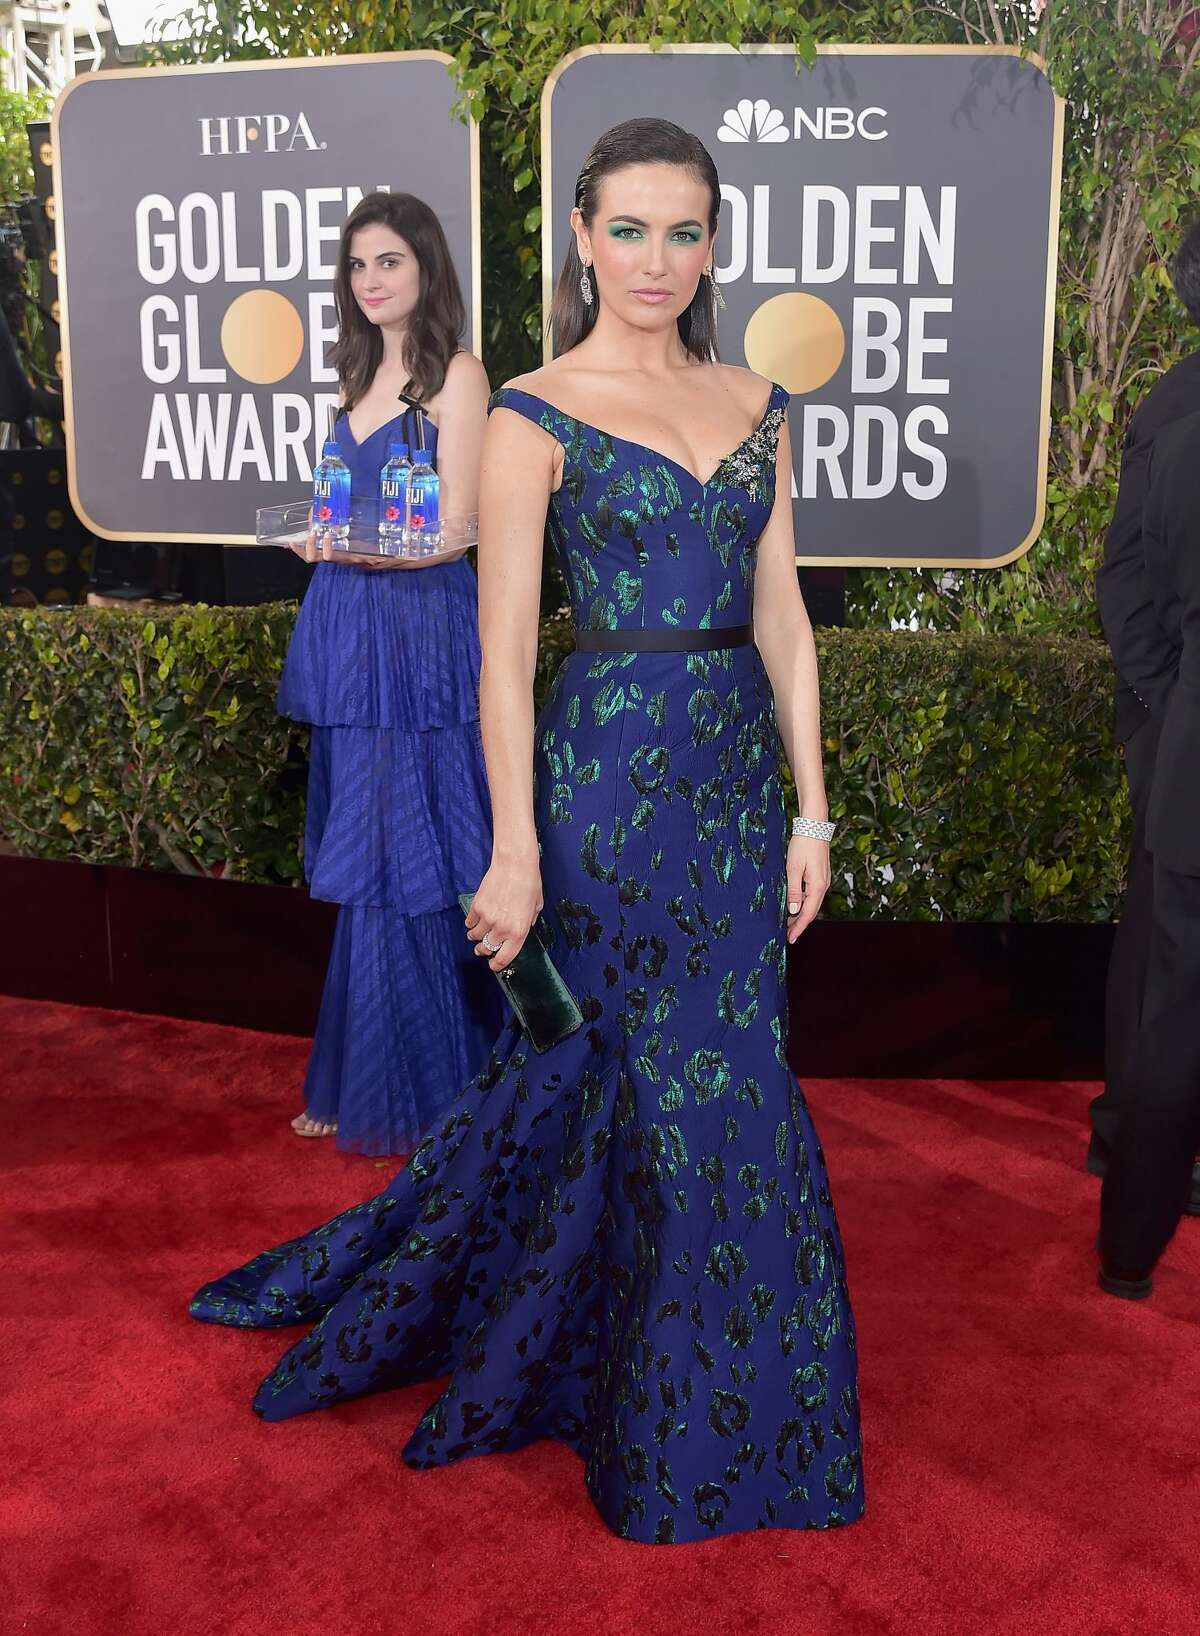 """Camilla Belle attends FIJI Water at the 76th Annual Golden Globe Awards on January 6, 2019 at the Beverly Hilton in Los Angeles.Model Kelleth Cuthbert was later identified as the so-called """"Fiji Water Girl."""" (Photo by Stefanie Keenan/Getty Images for FIJI Water)"""